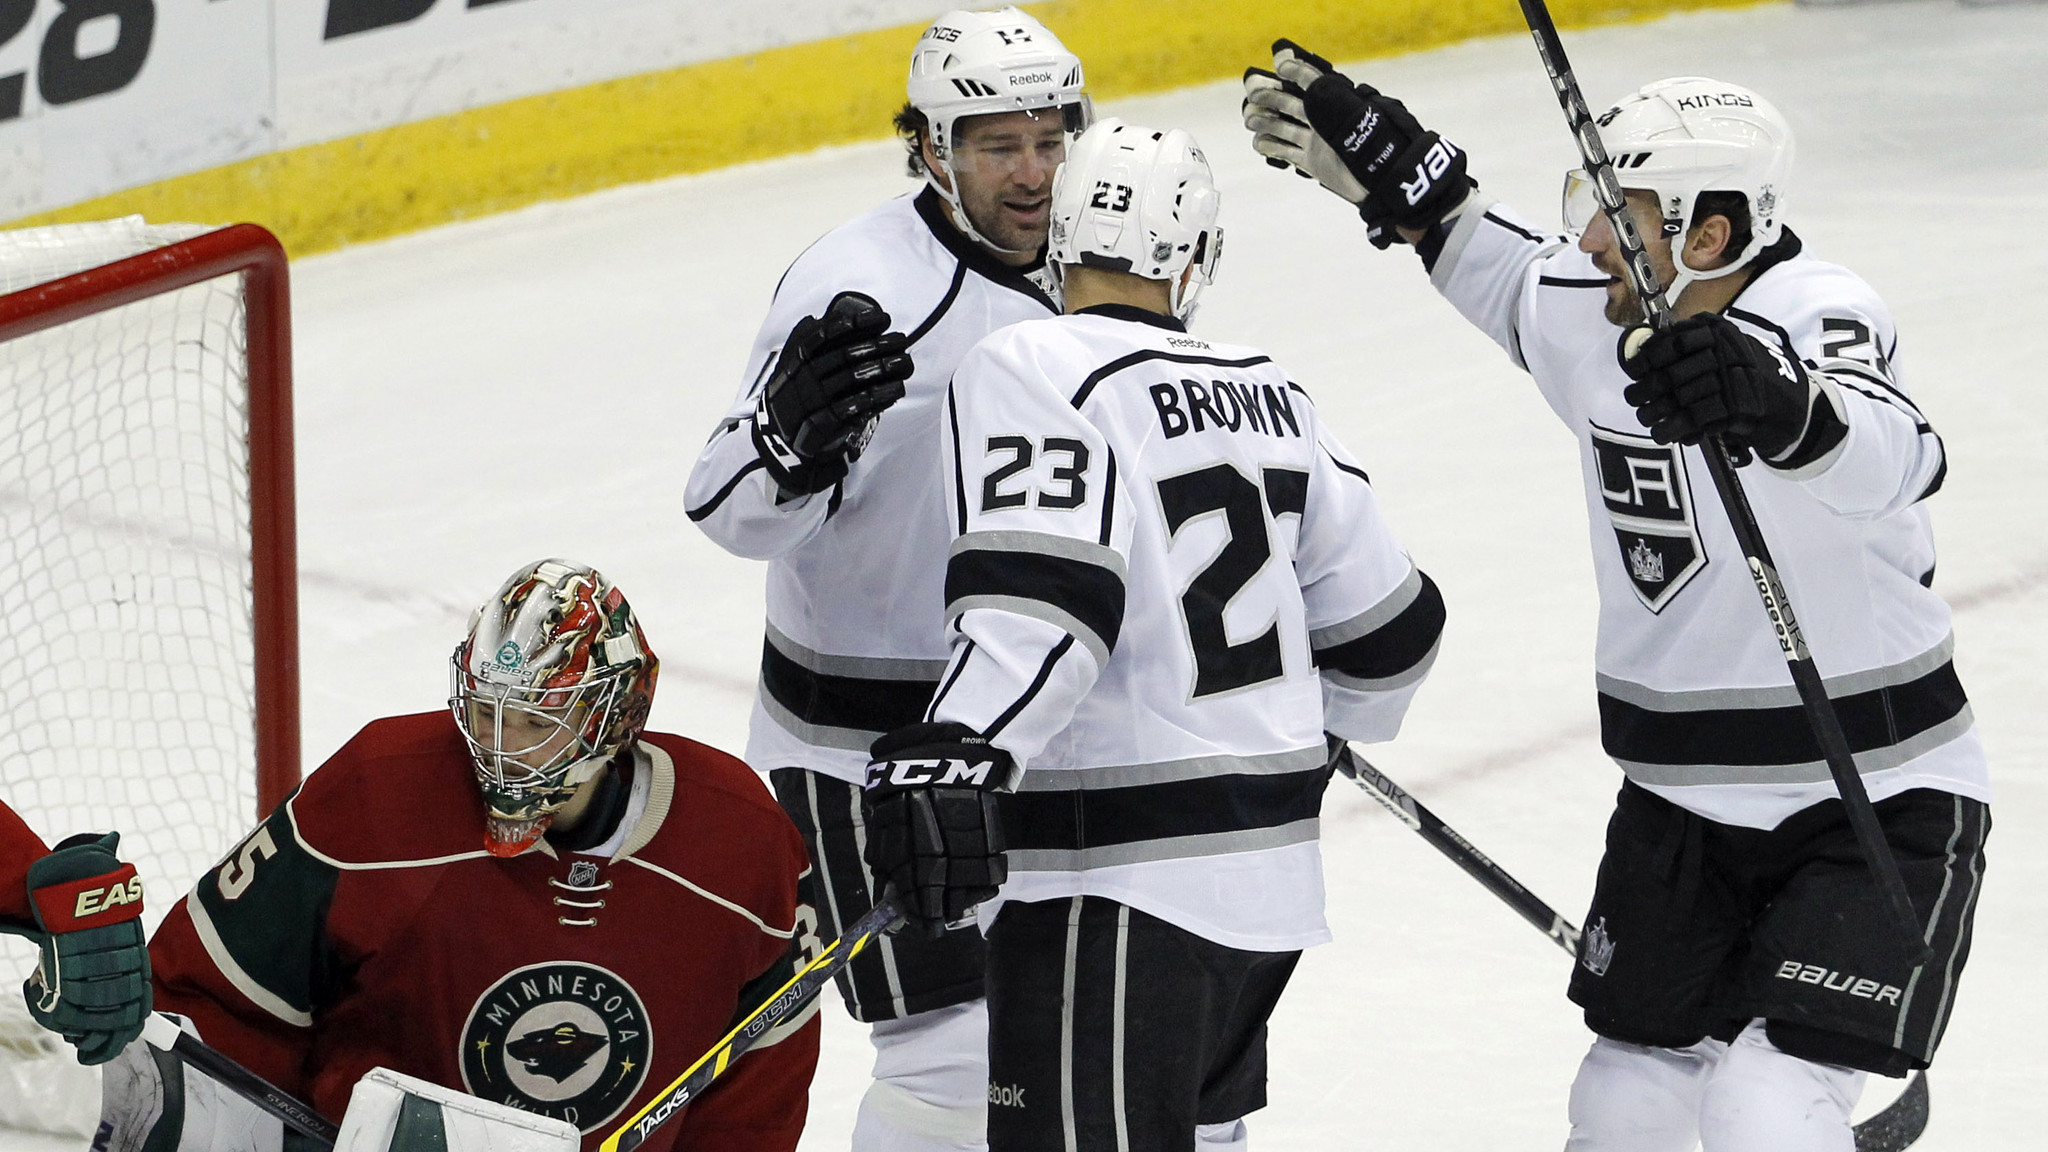 Kings dominate in 4-0 victory over Wild